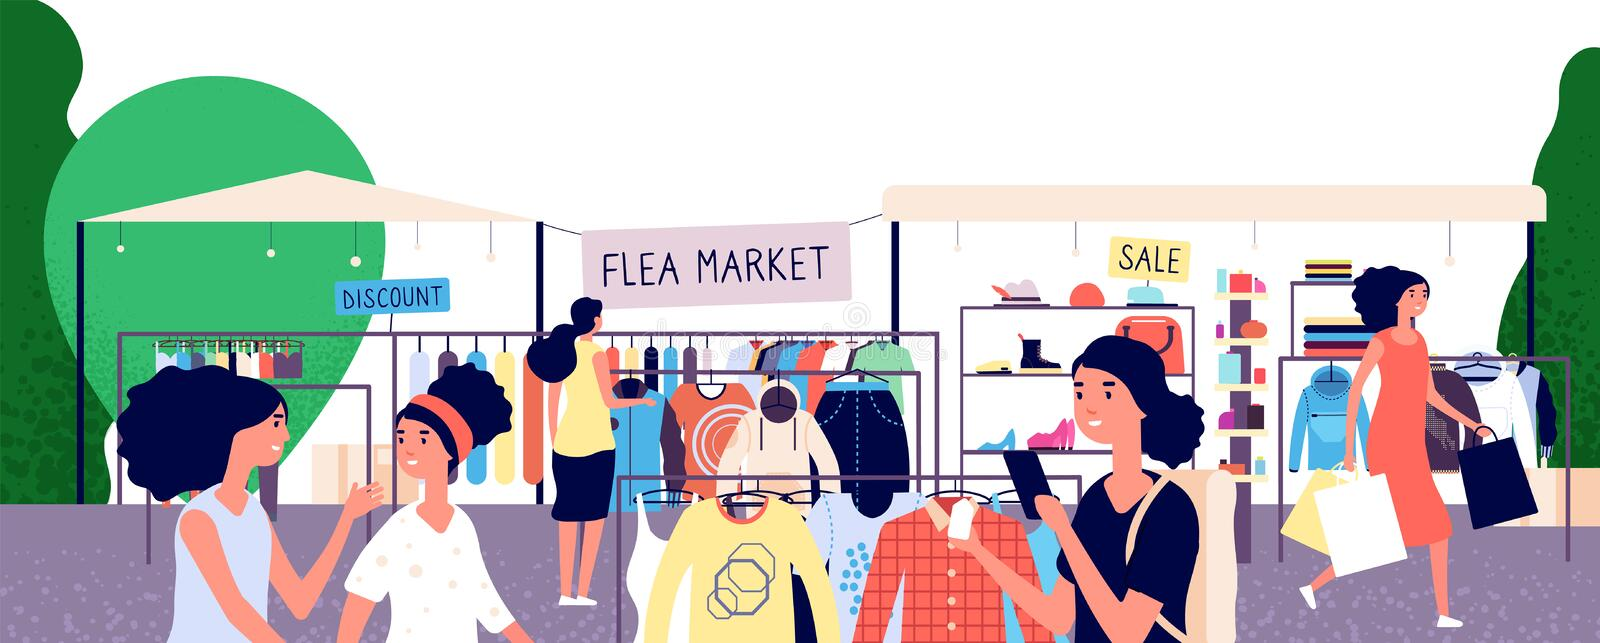 Flea market. Women shoppers choosing fashion clothes at bazaar. Garage street sale and secondhand shopping vector. Concept. Shopping outdoor bazaar illustration royalty free illustration